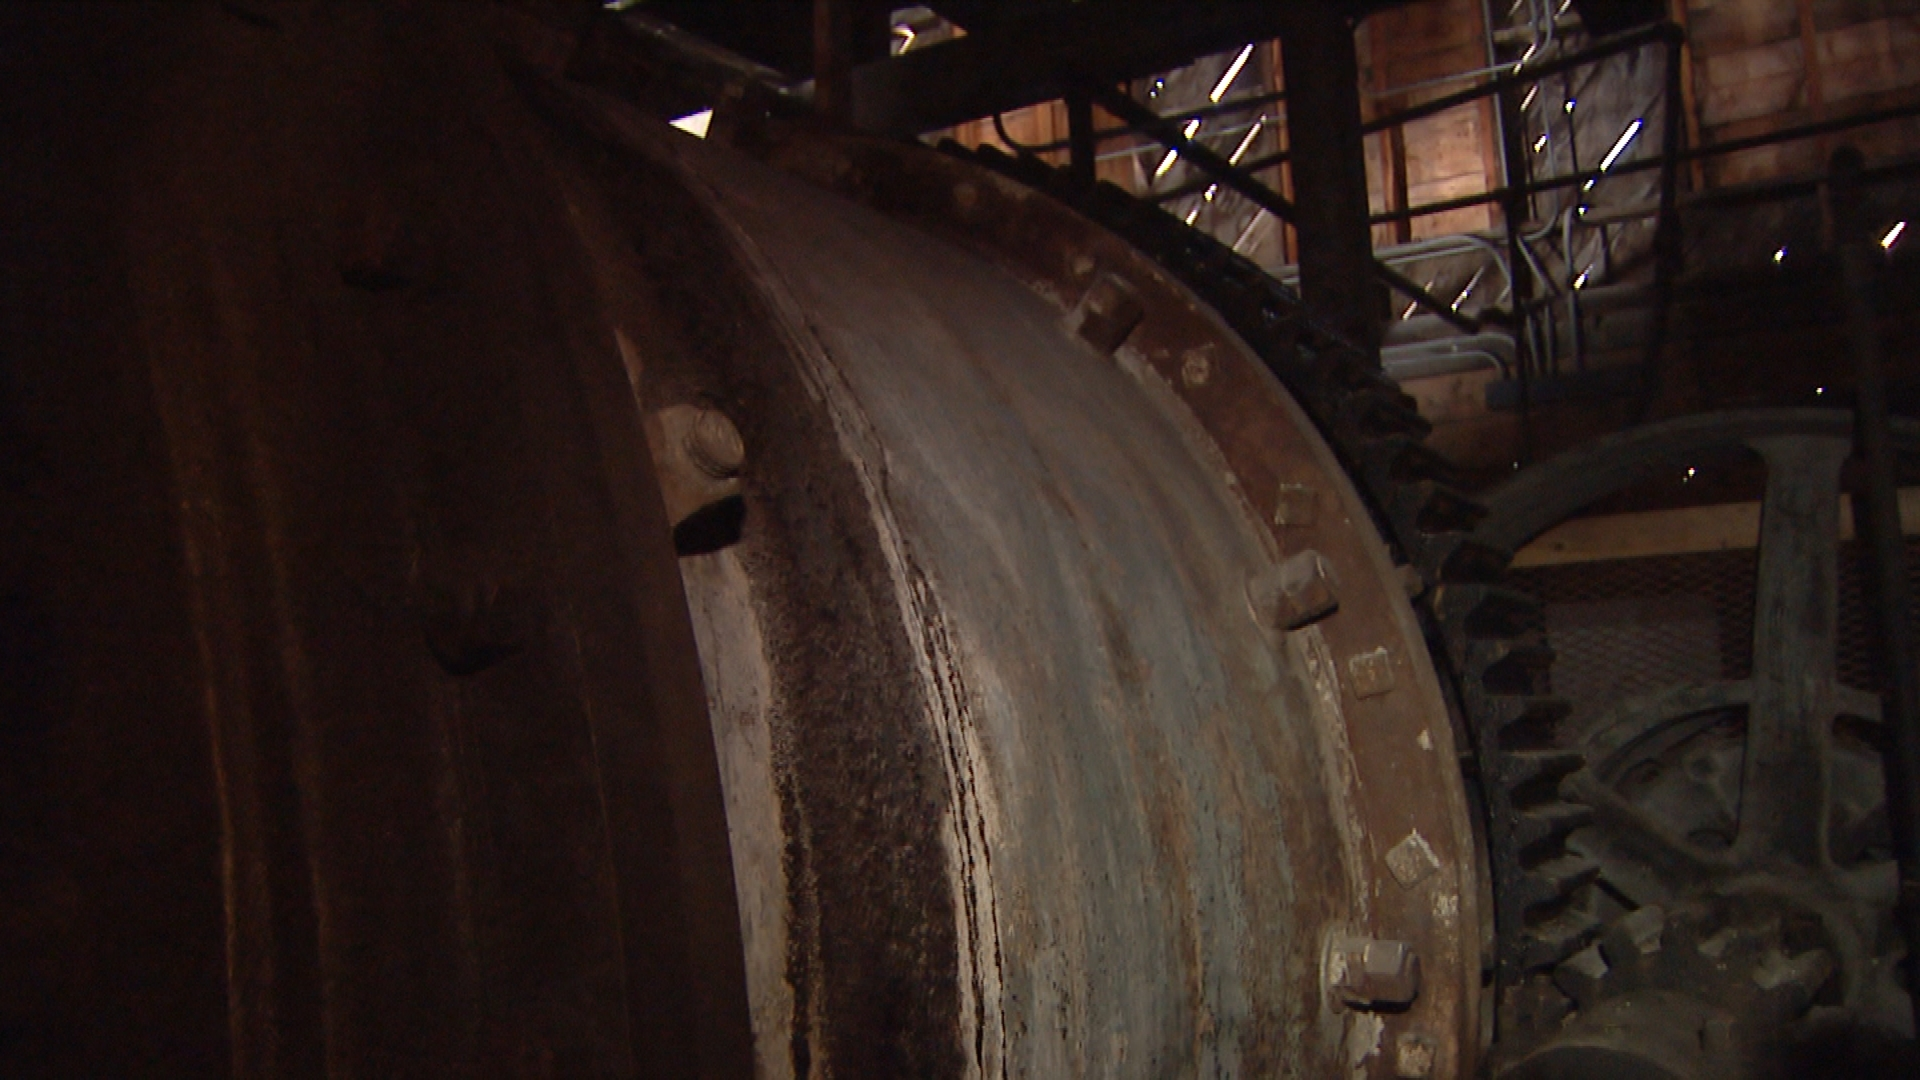 One of the ball mills inside the processing mill. This is essentially a large rock tumbler with heavy metal balls that crush the rock into a fine powder (credit: CBS)